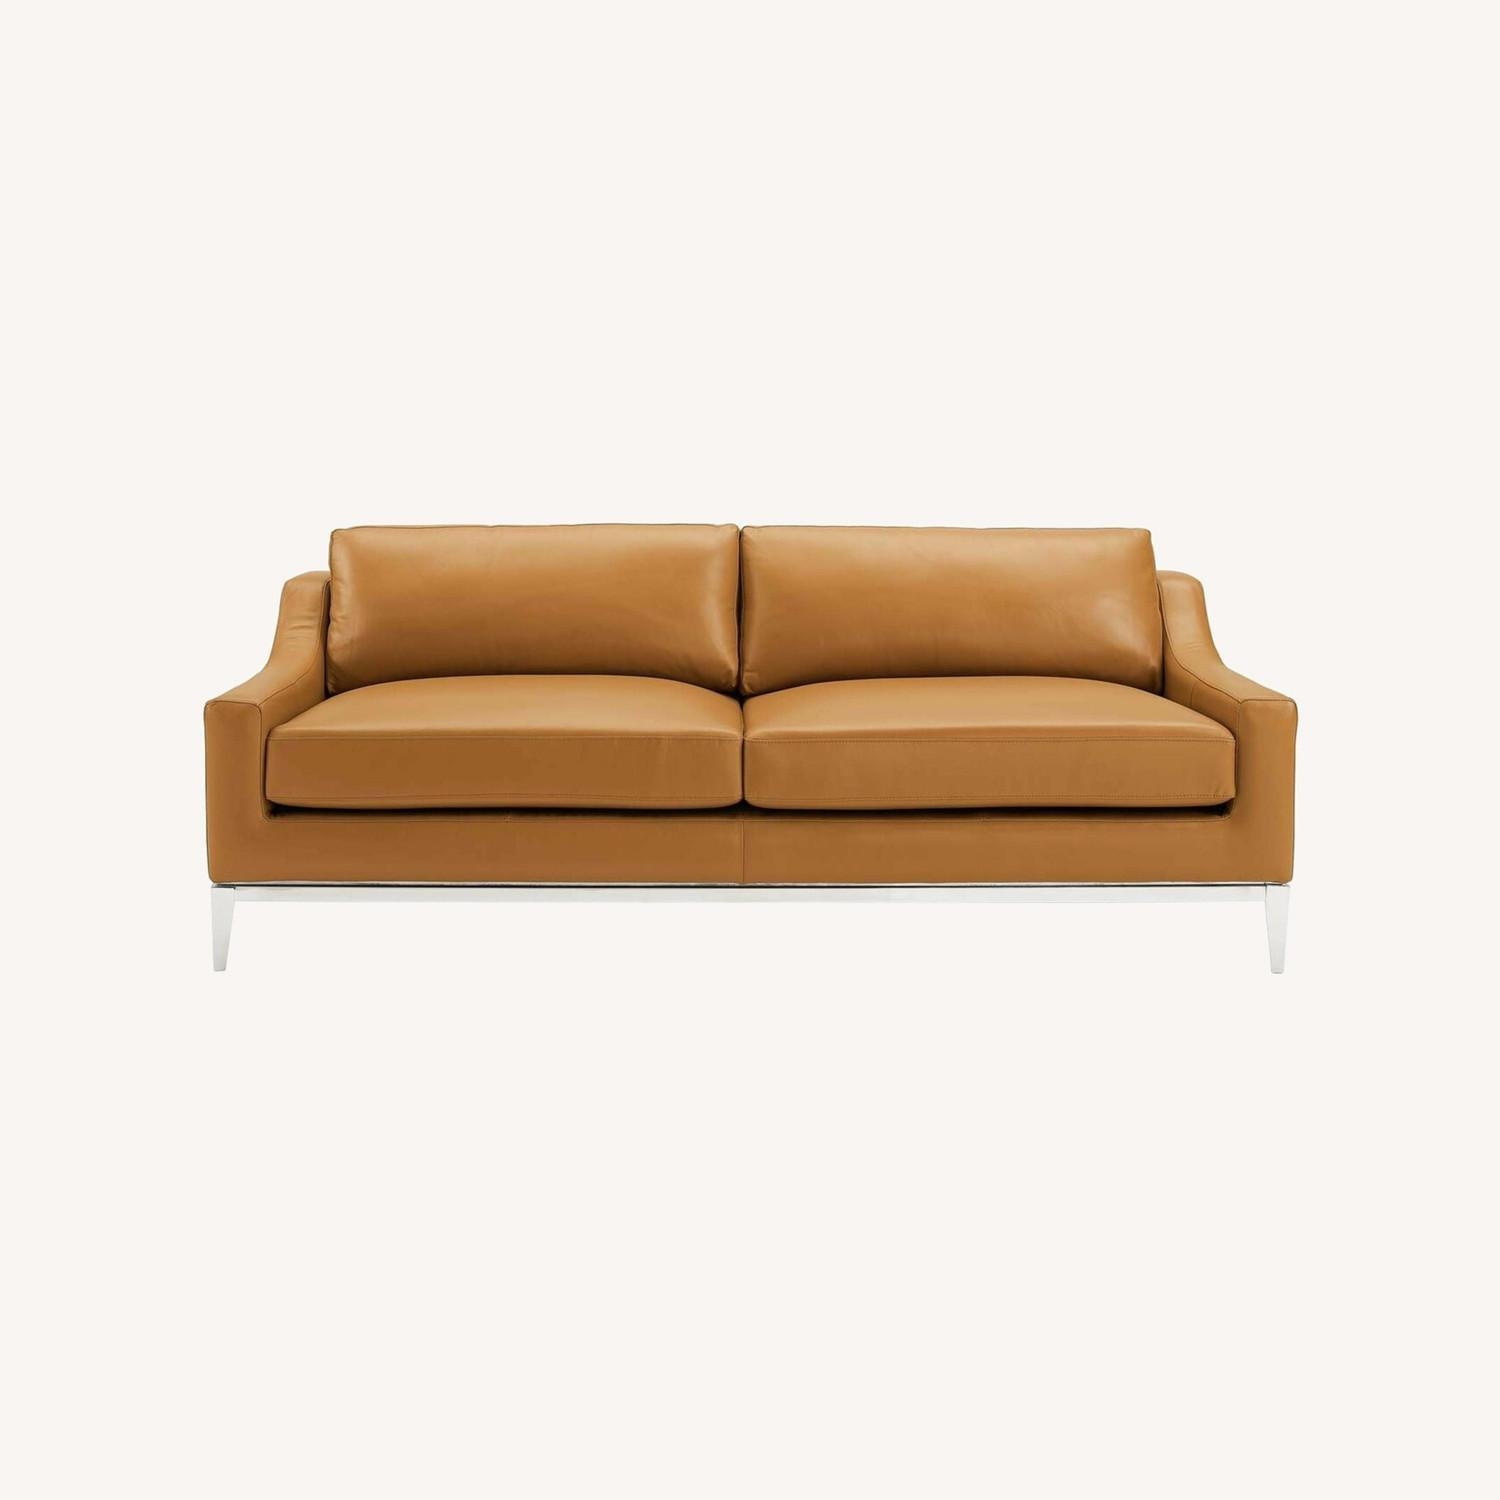 Sofa In Tan Leather Upholstery W/ Steel Base - image-9